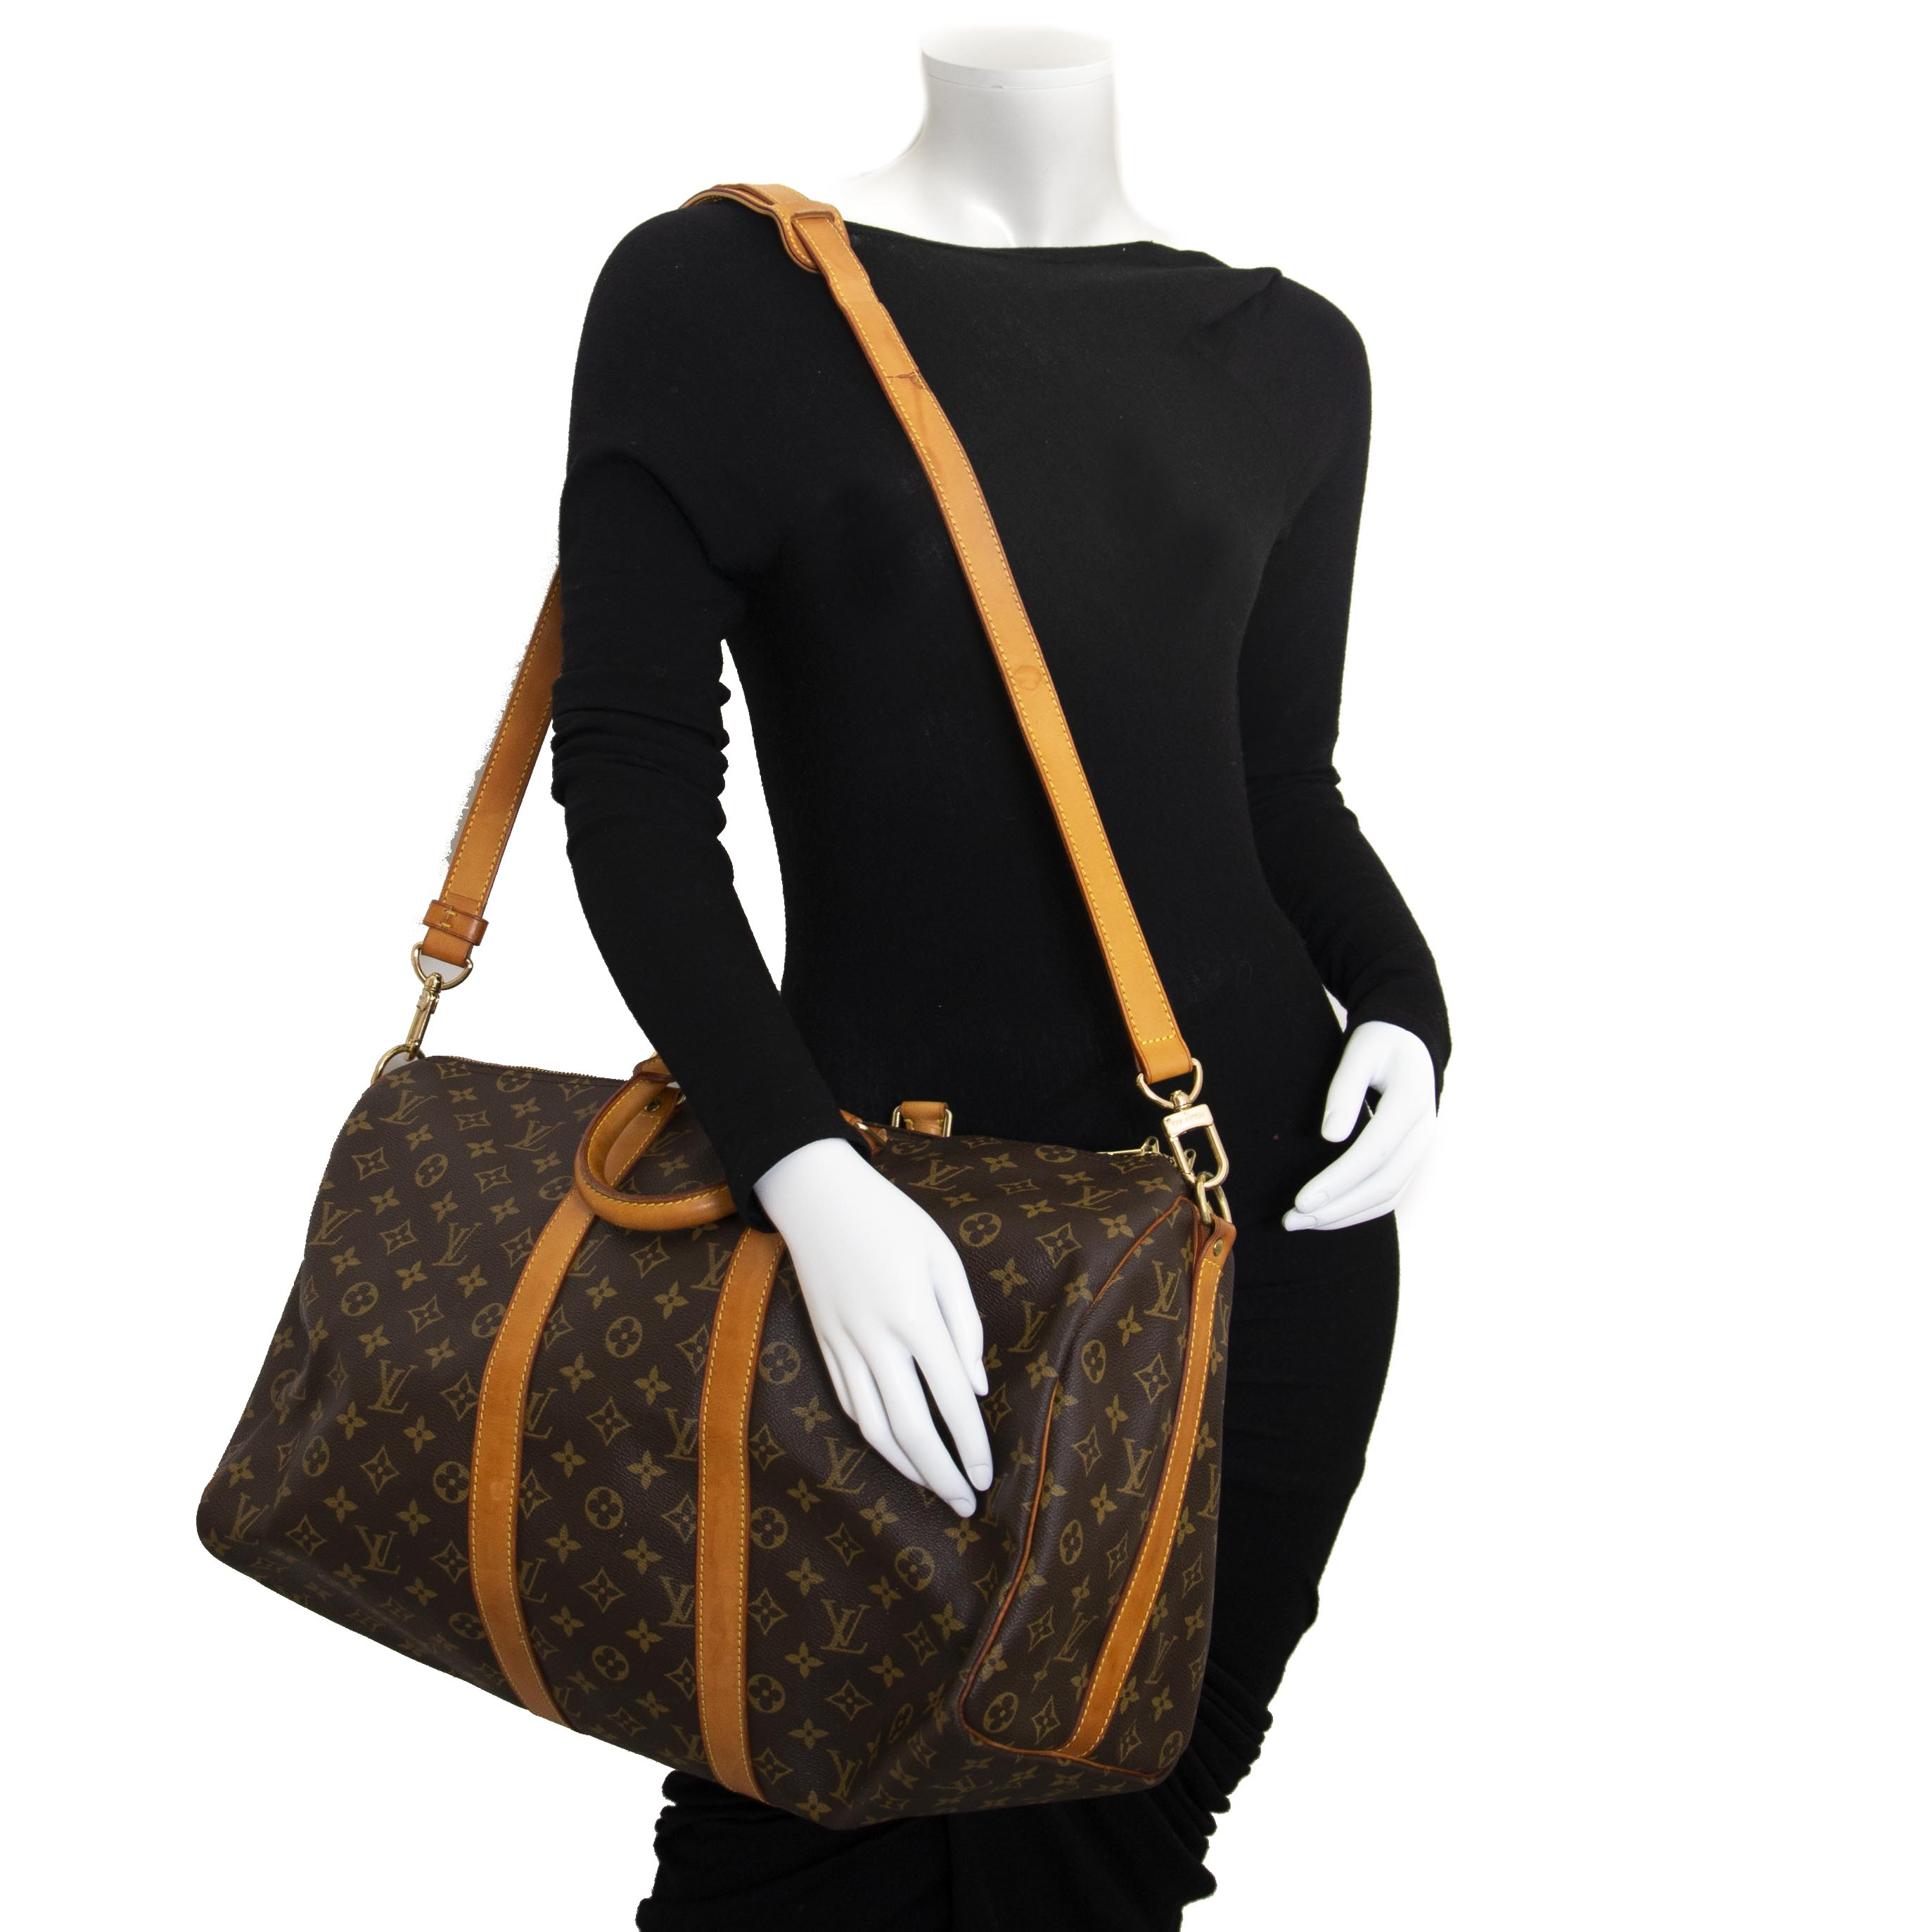 f31c37e72f74 ... secondhand luxury Buy your authentic Louis Vuitton Keepall 45  Bandoulière for the best price at Labellov